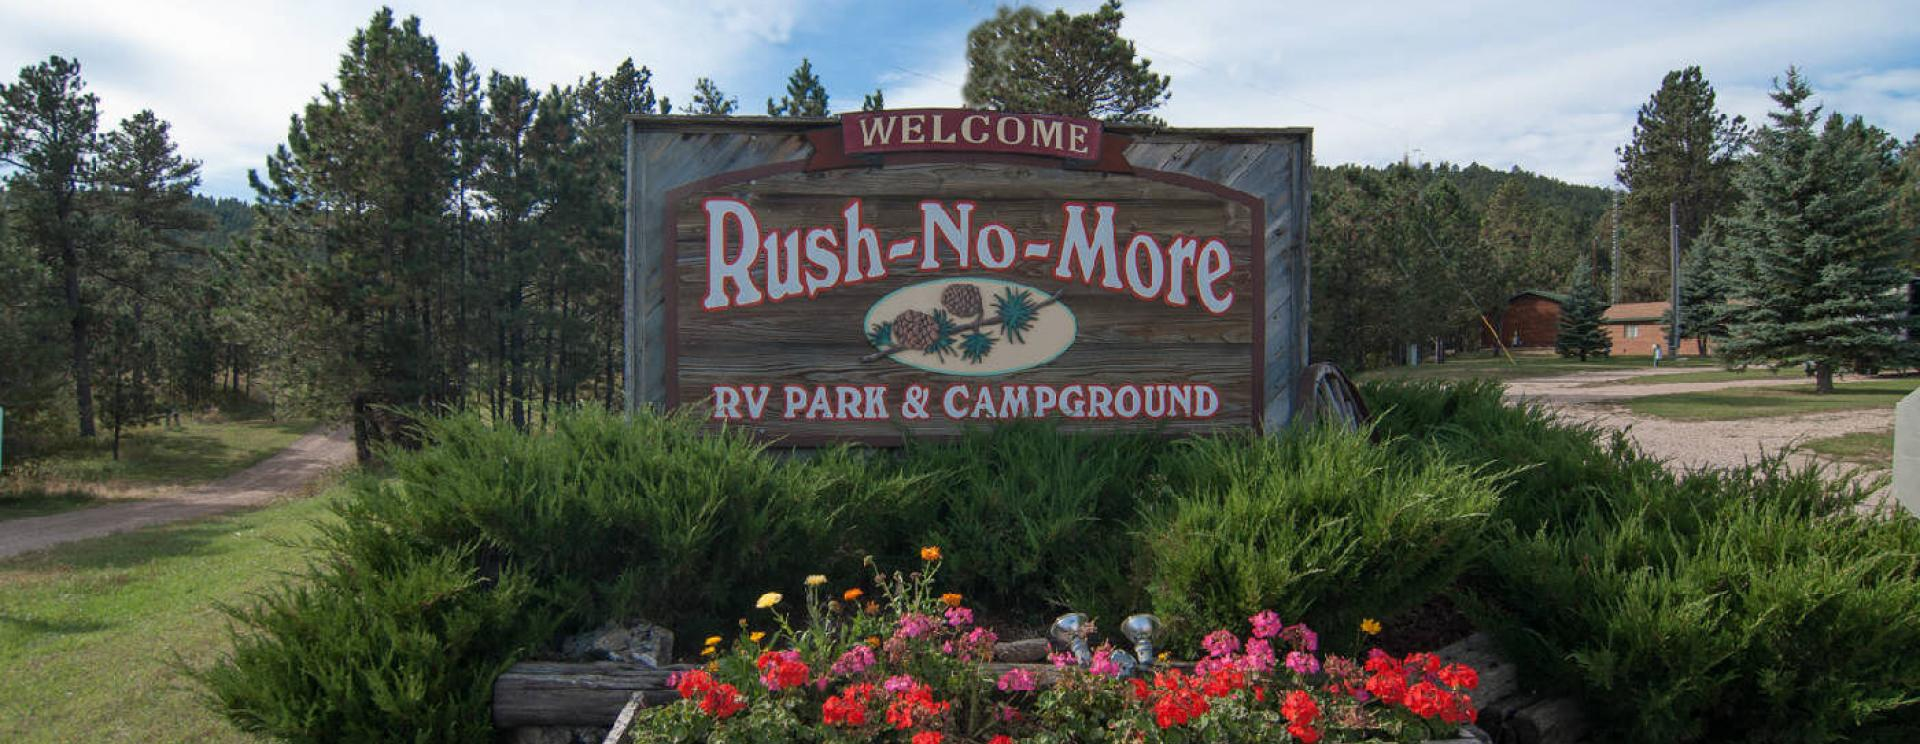 RUSH-NO-MORE CAMPGROUND - Prices & Reviews